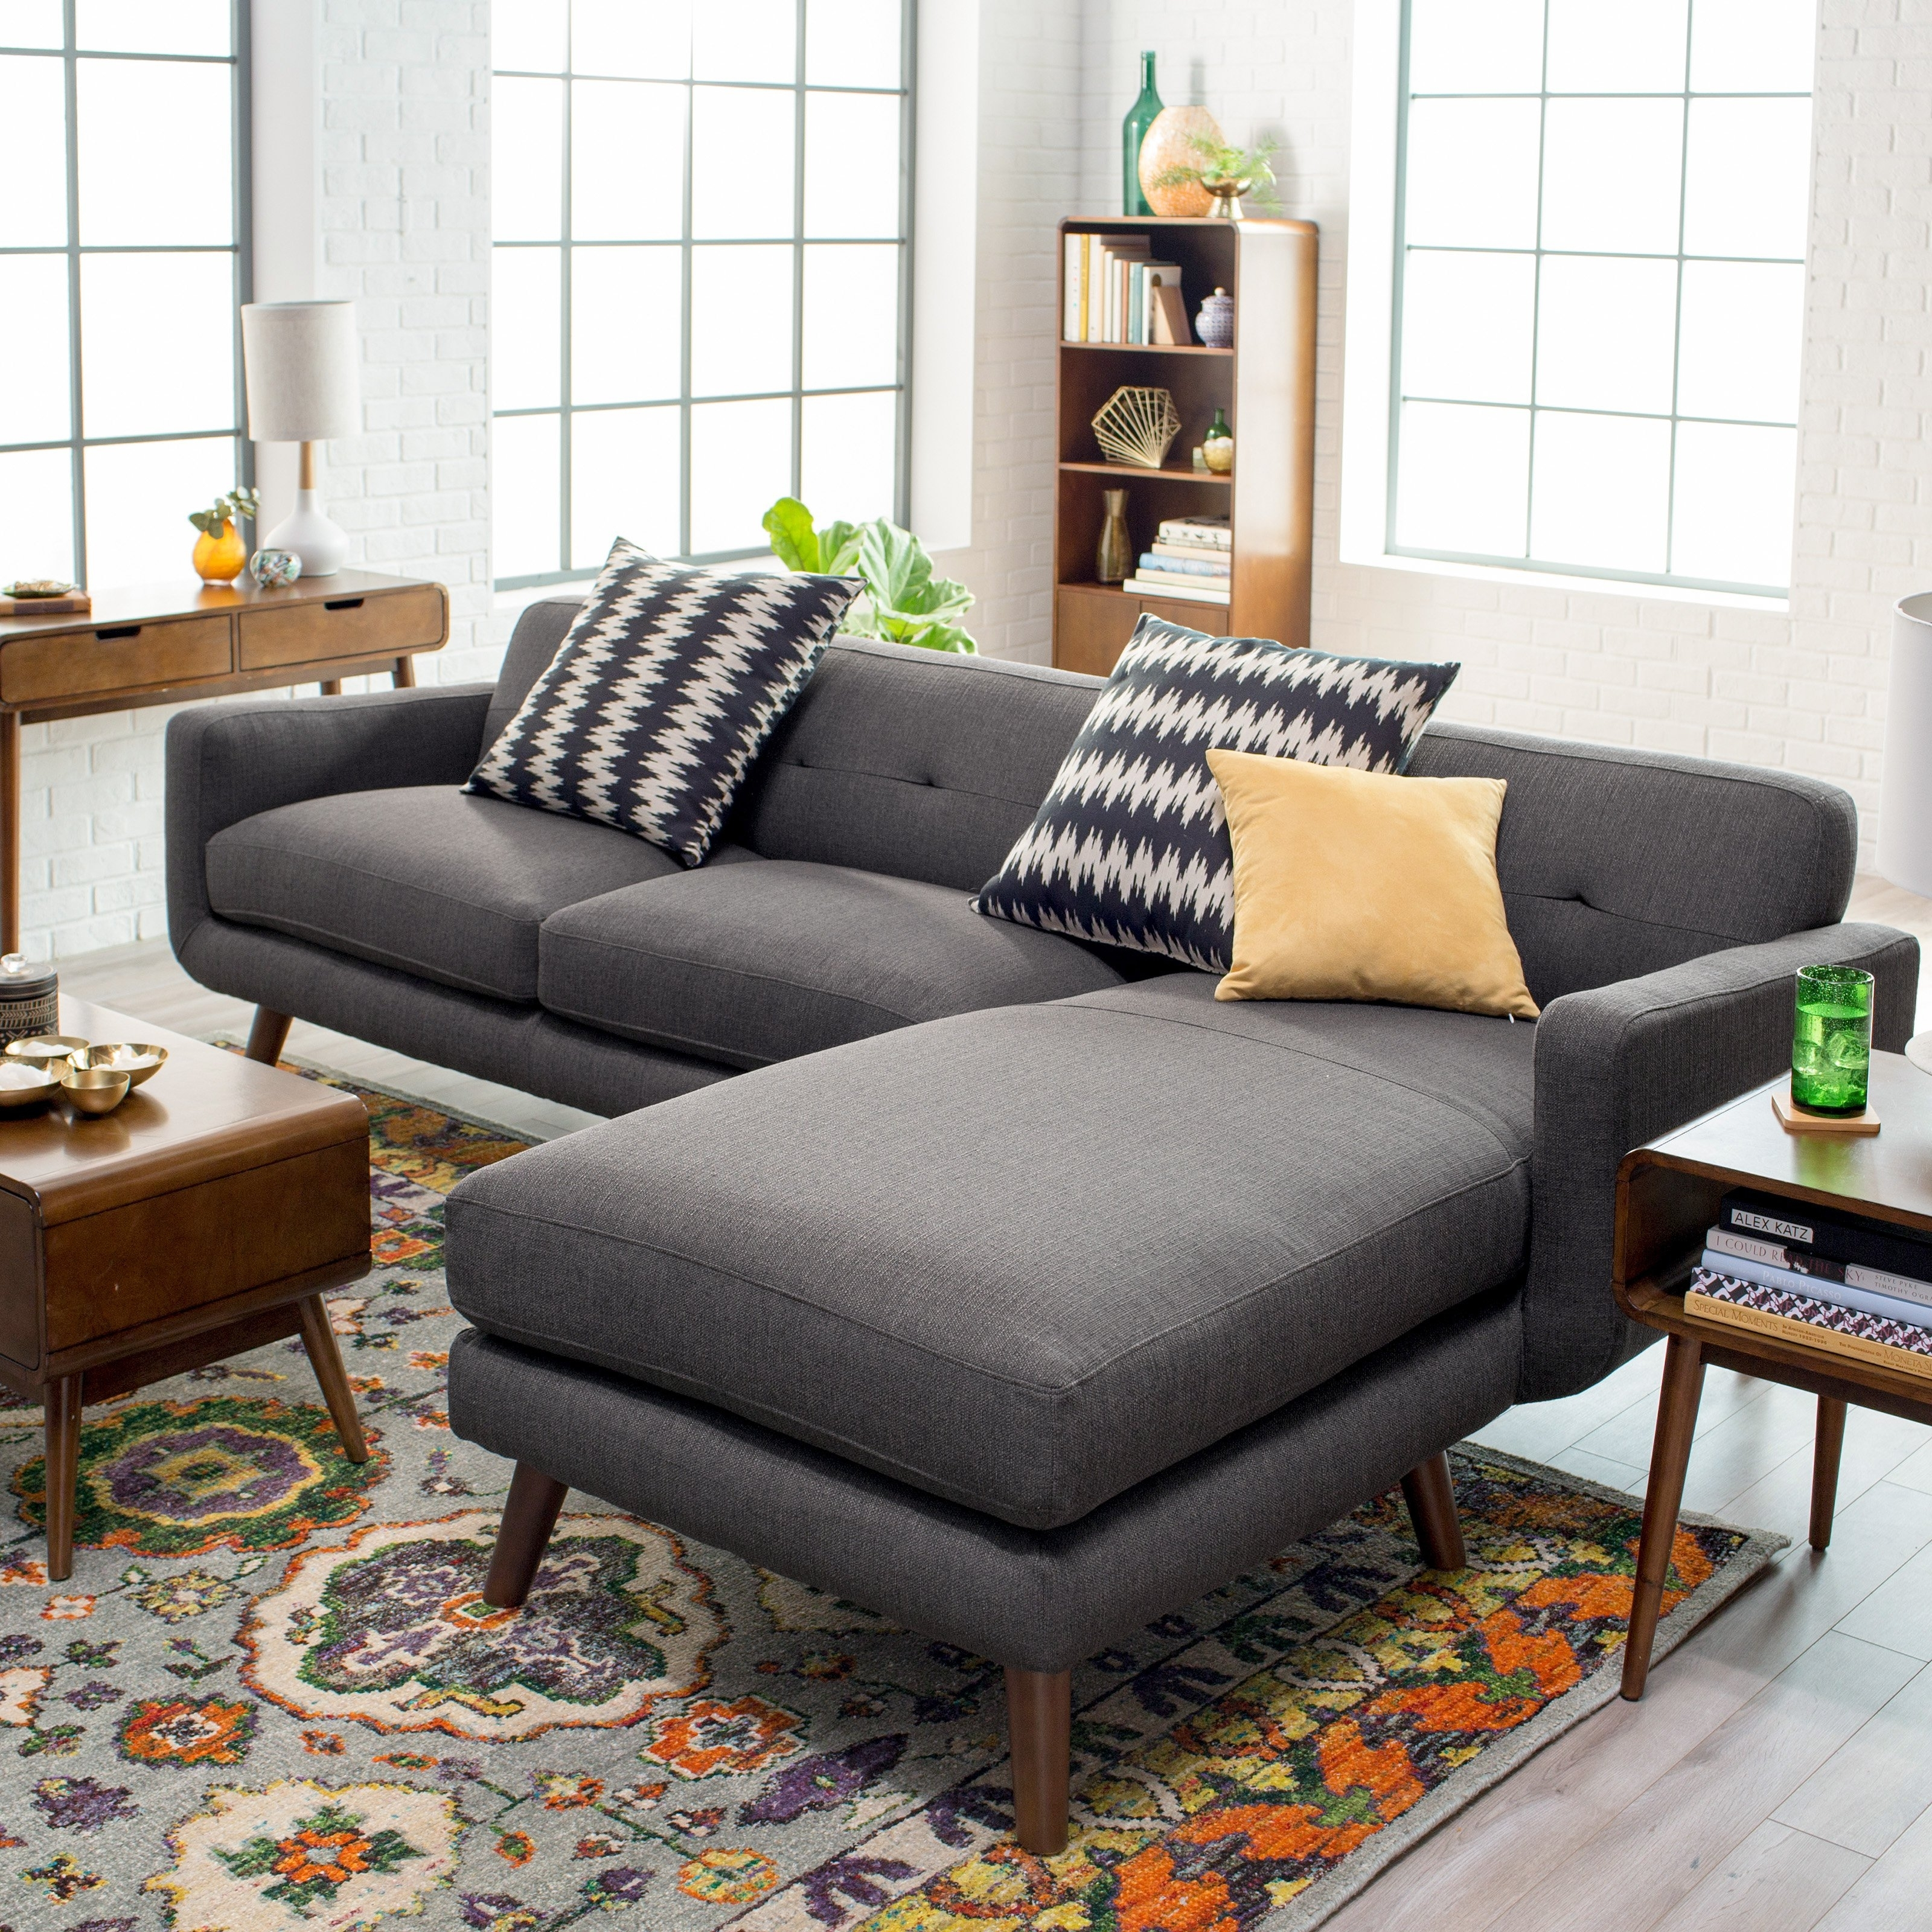 Dorel Living Small Spaces Configurable Sectional Sofa | Hayneedle With Regard To Sectional Sofas (Image 4 of 10)